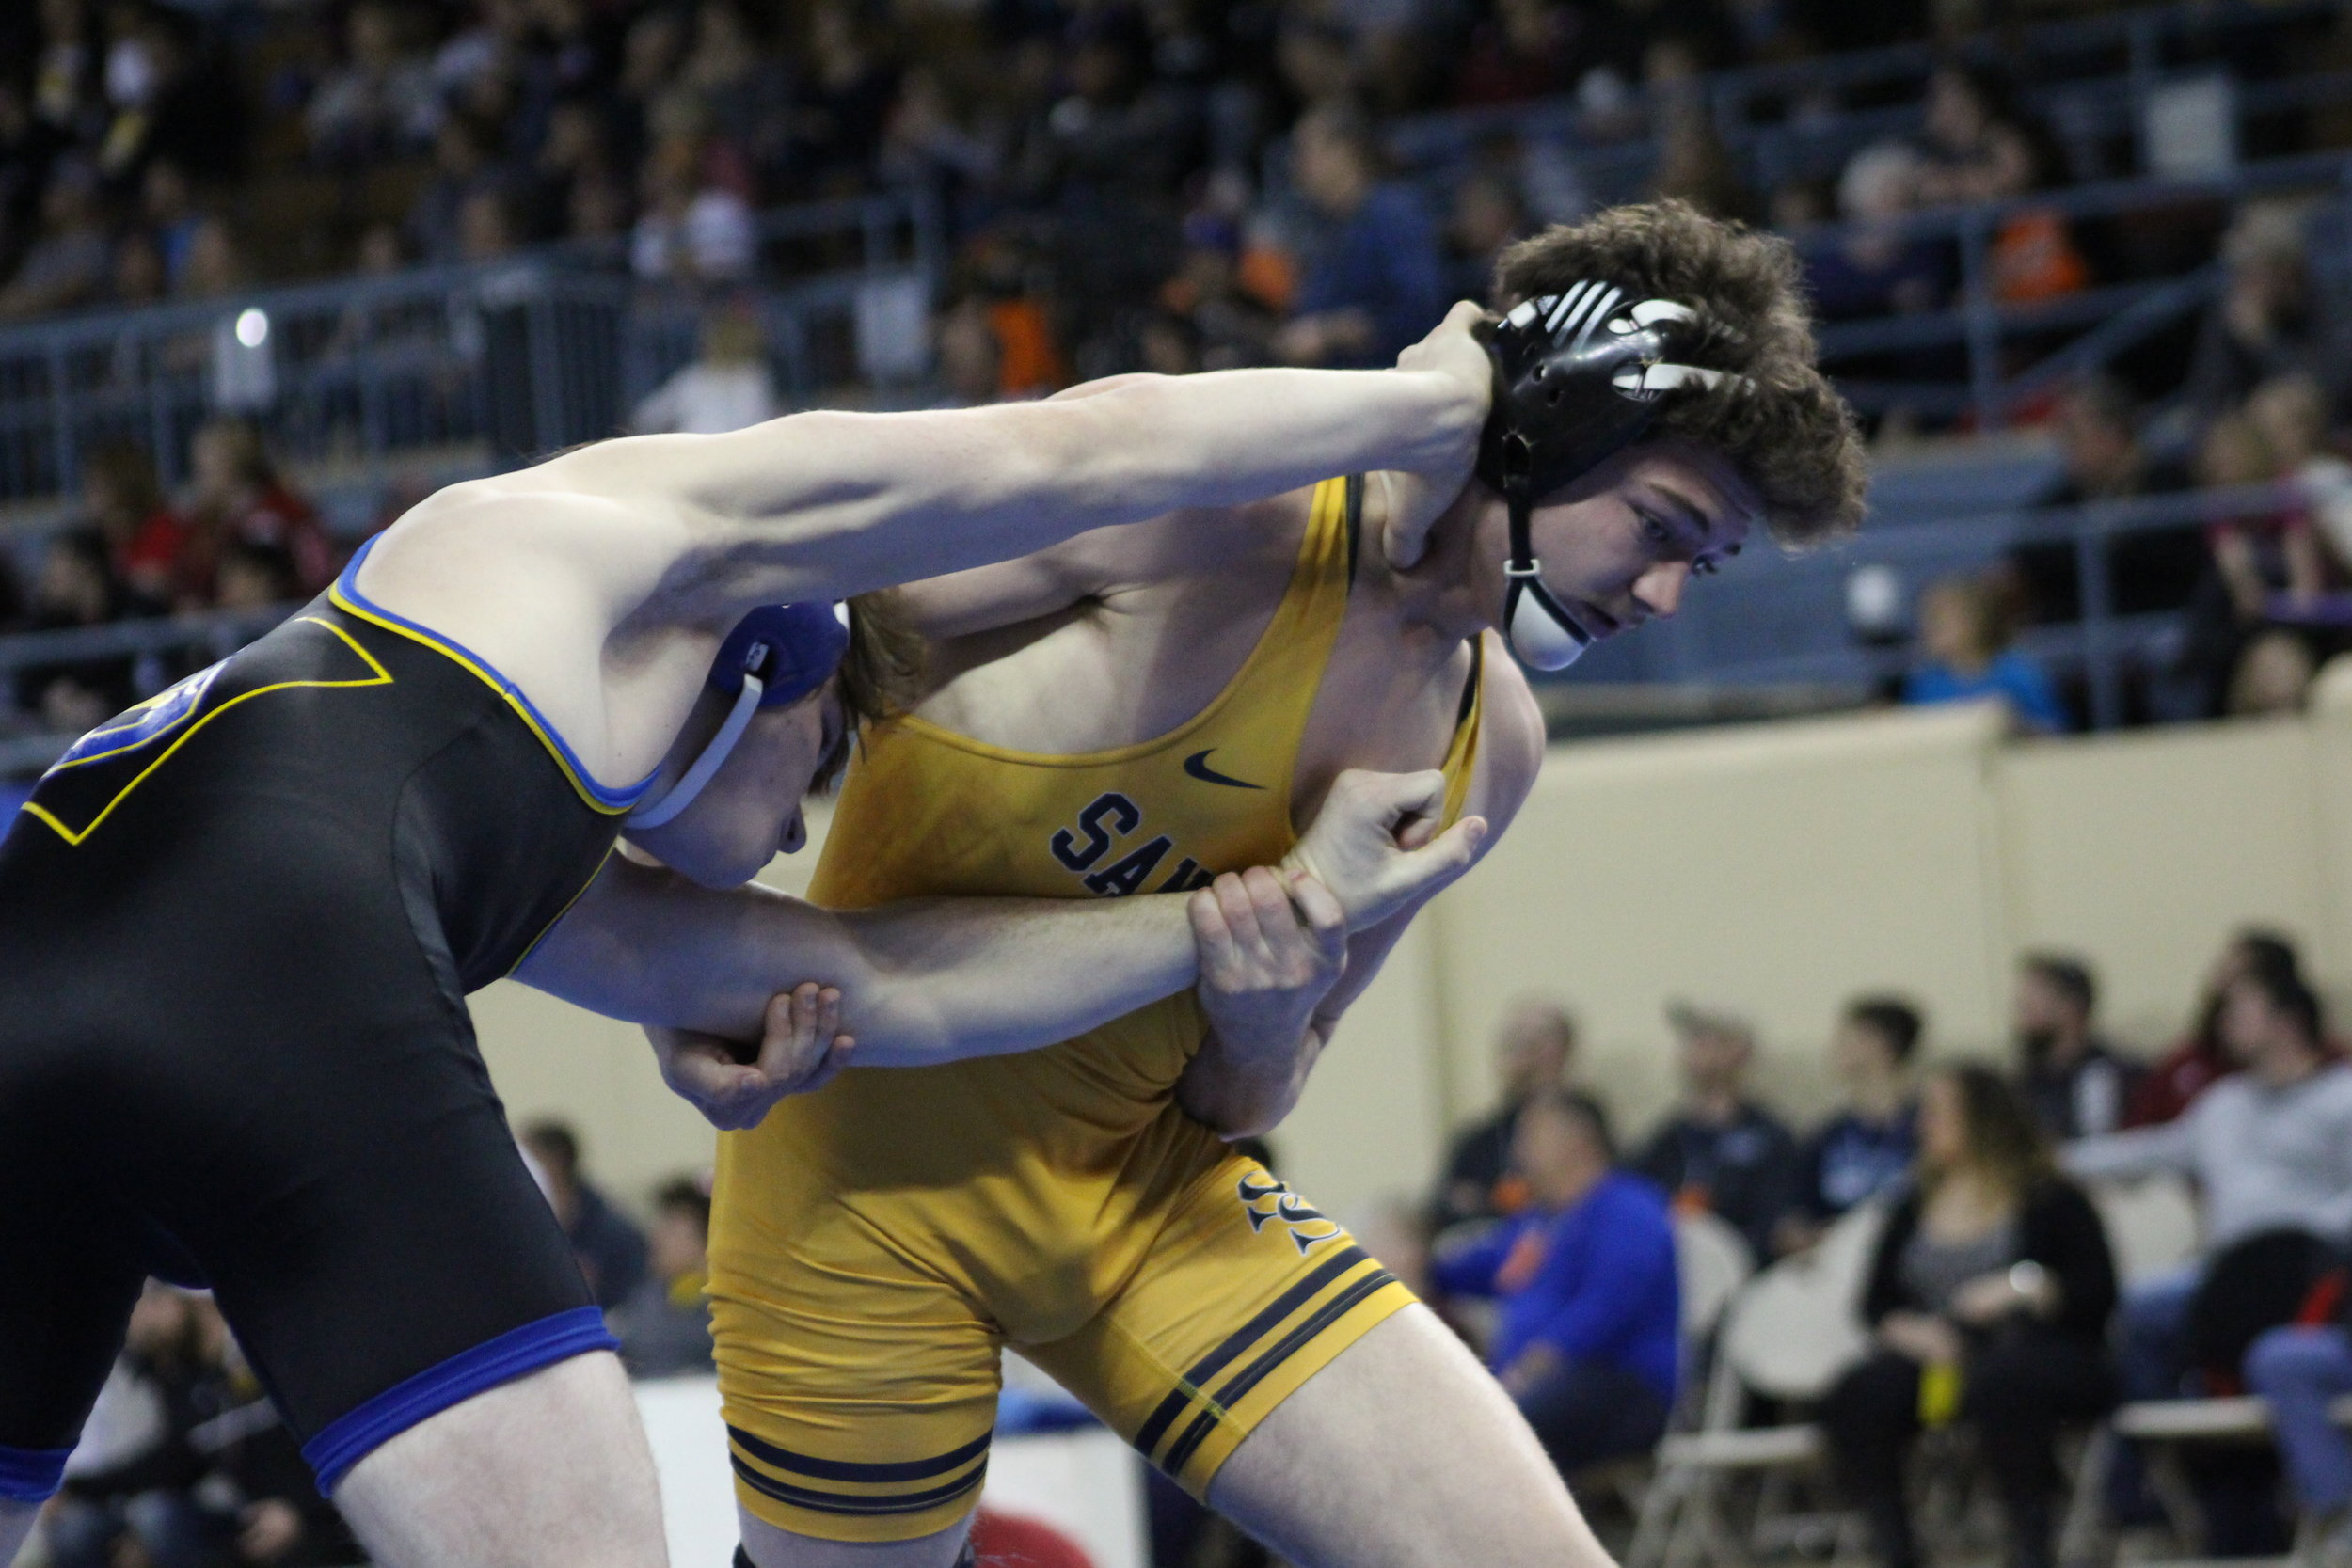 Jack Karstetter competes at the OSSAA 6A State Championship in 2017.